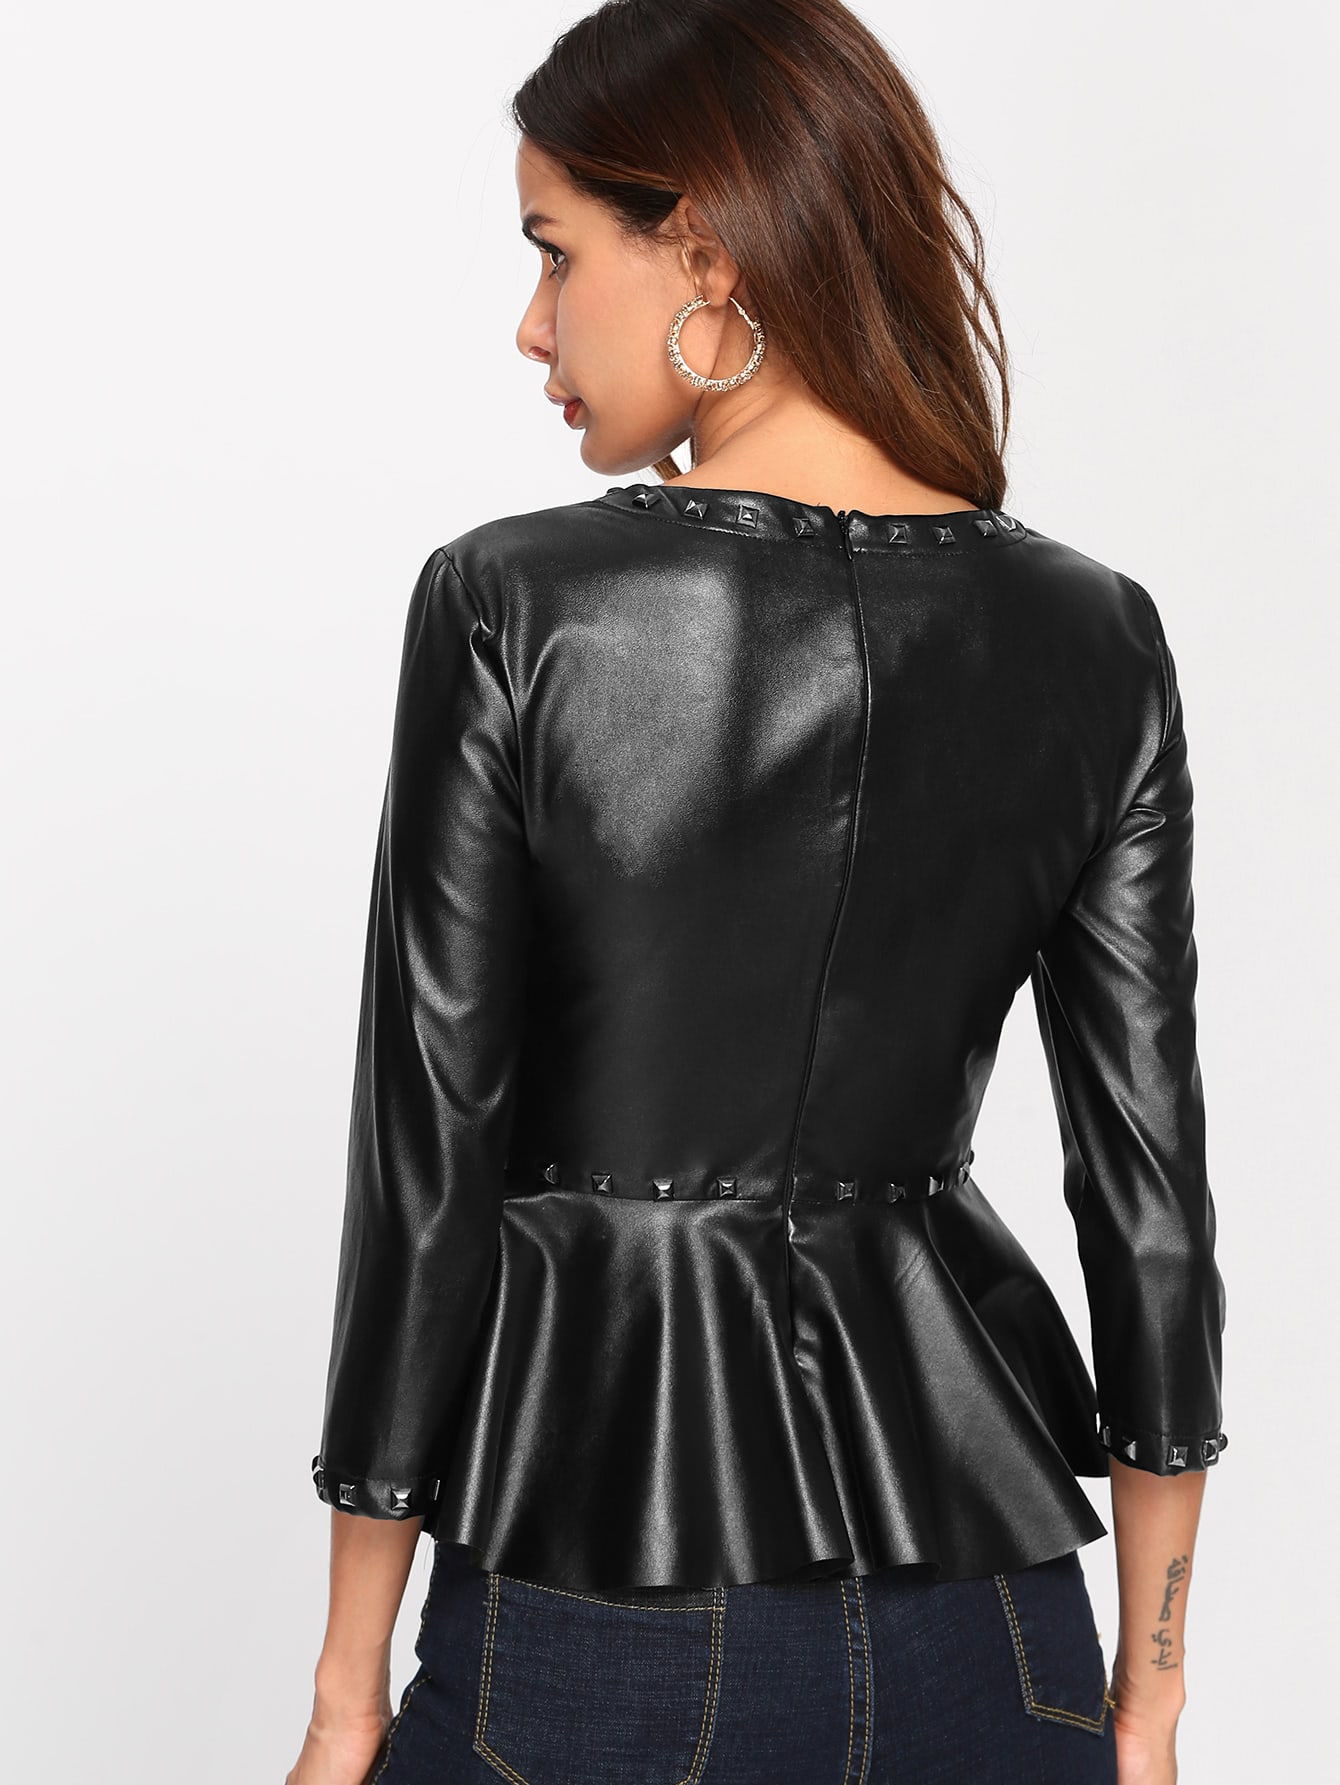 25f2ecfe3ac6 Studs Detail Faux Leather Peplum Top